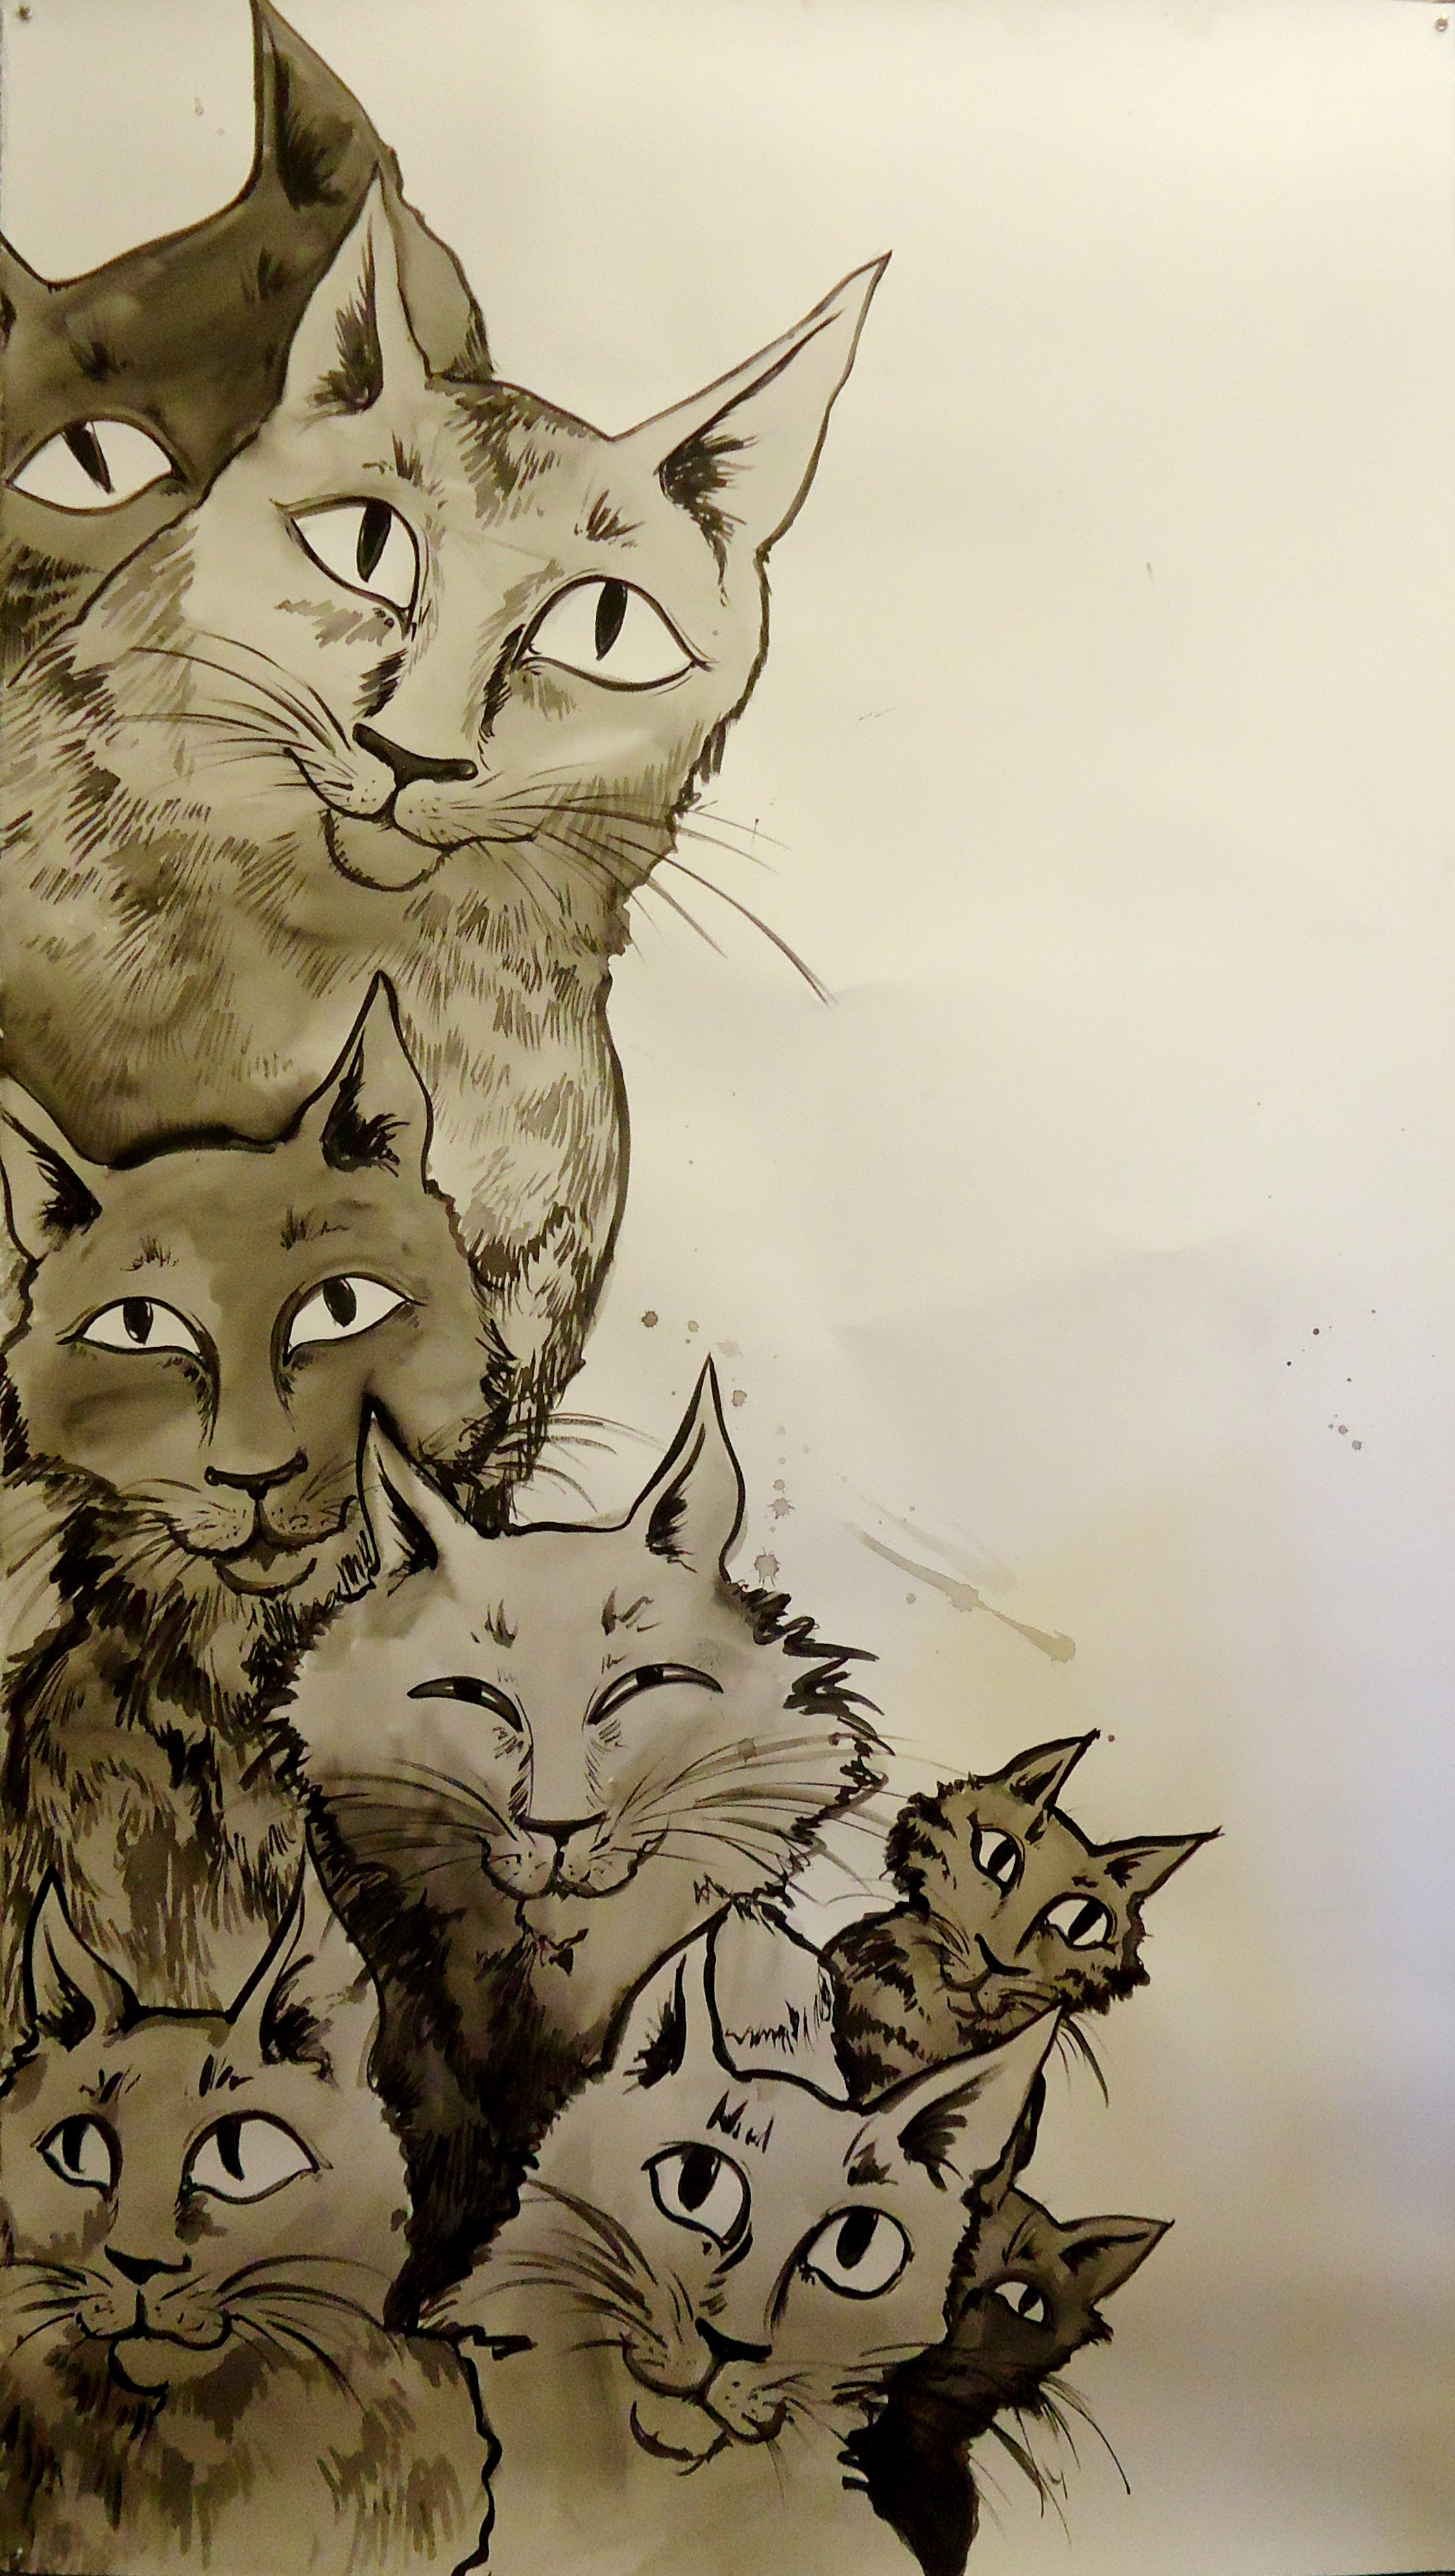 """I woke to plaintive meowing in the room, and a vague, nagging concern that I may be out of canned tuna. Ink on paper.42.5"""" x 73.5"""""""